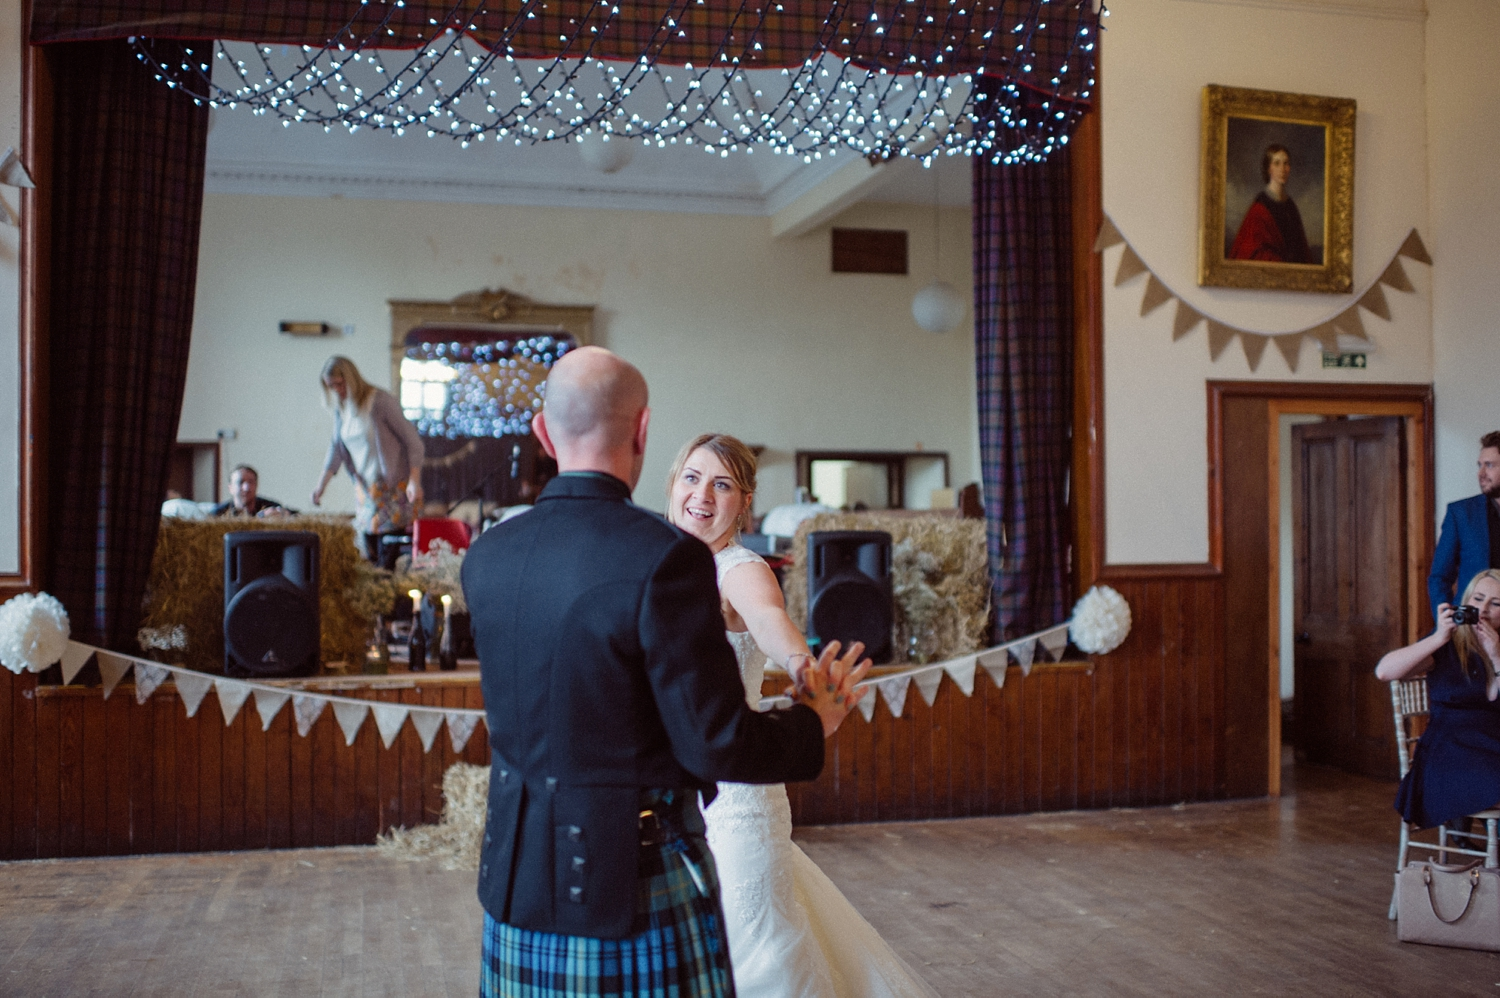 193-lisa-devine-photography-alternative-wedding-photography-skye-scotland.JPG